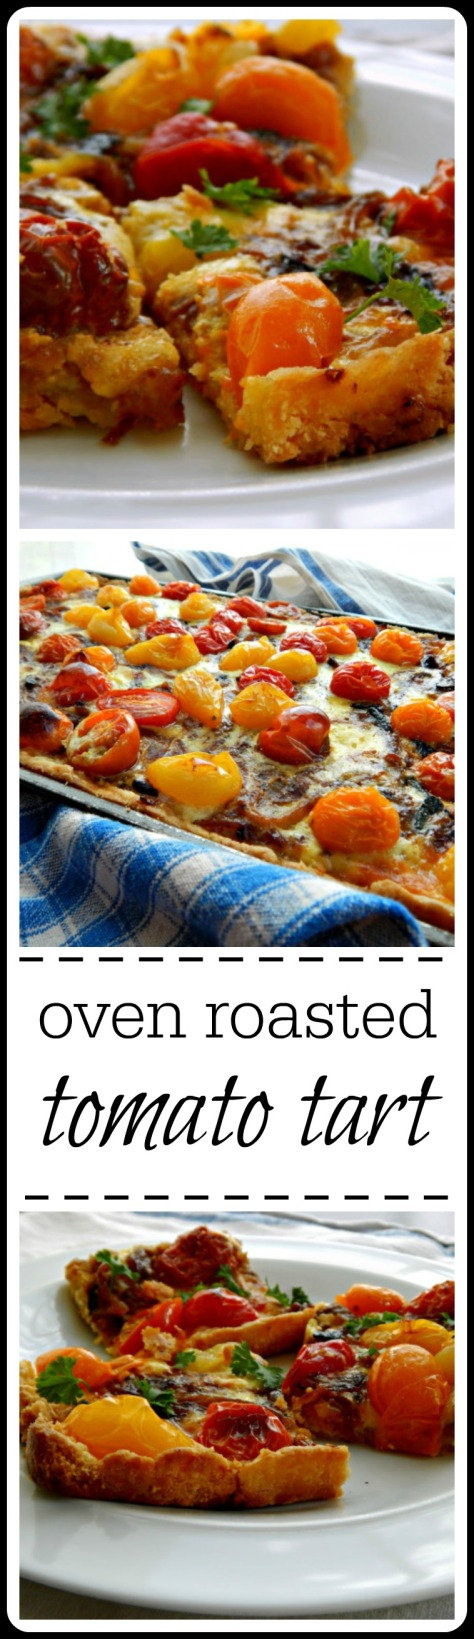 Oven Roasted Tomato Tart - tomatoes, cheese and caramelized onions.